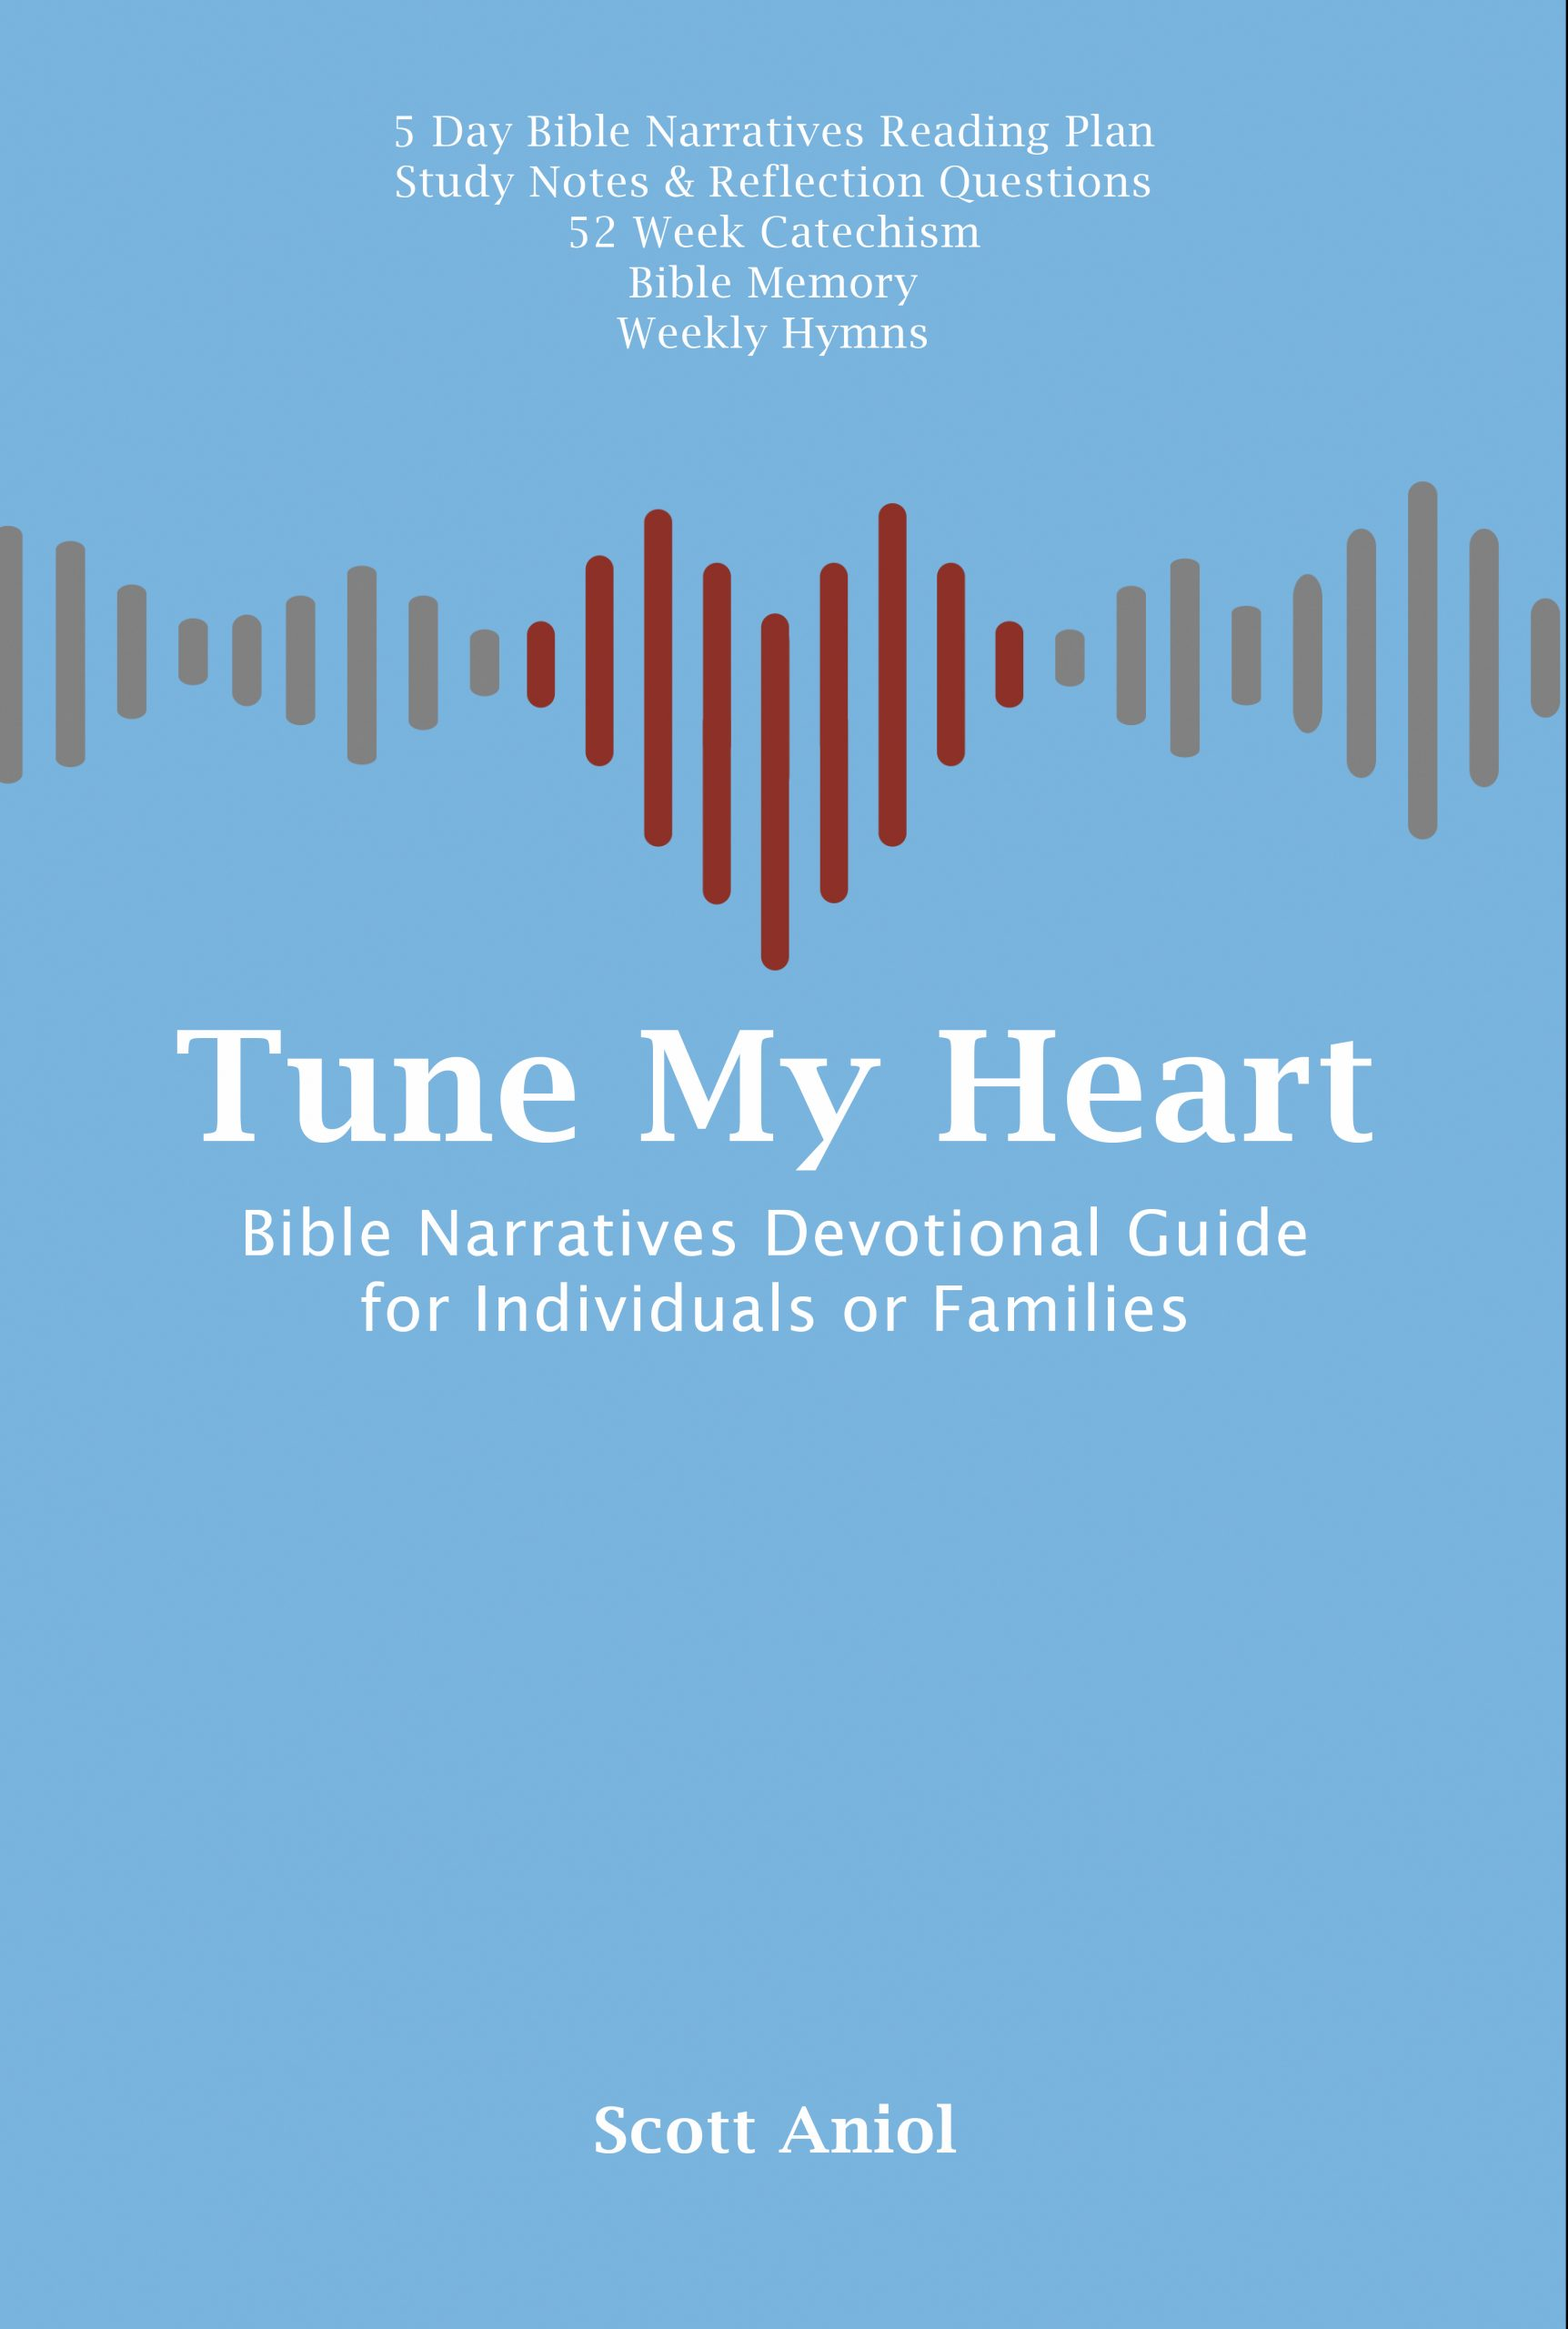 New Book! Tune My Heart: Bible Narratives Devotional Guide for Families or Individuals